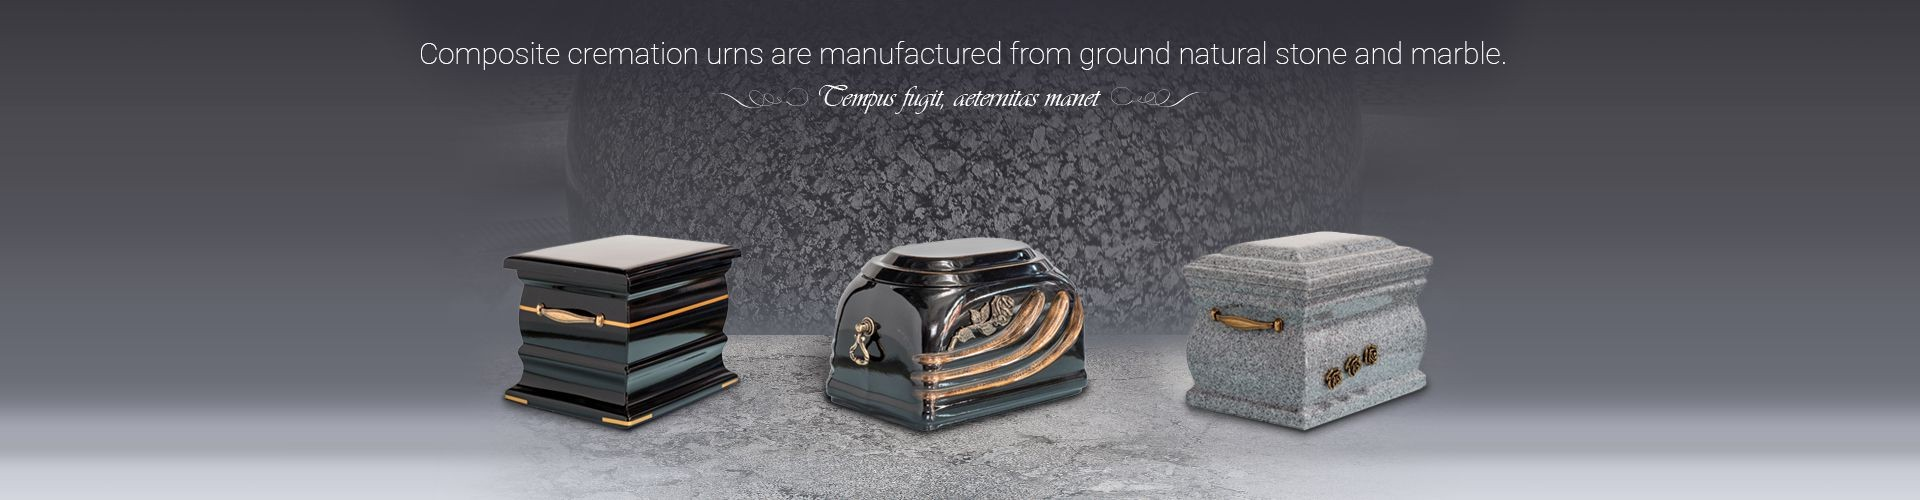 Composite cremation urns are manufactured from ground natural stone and marble